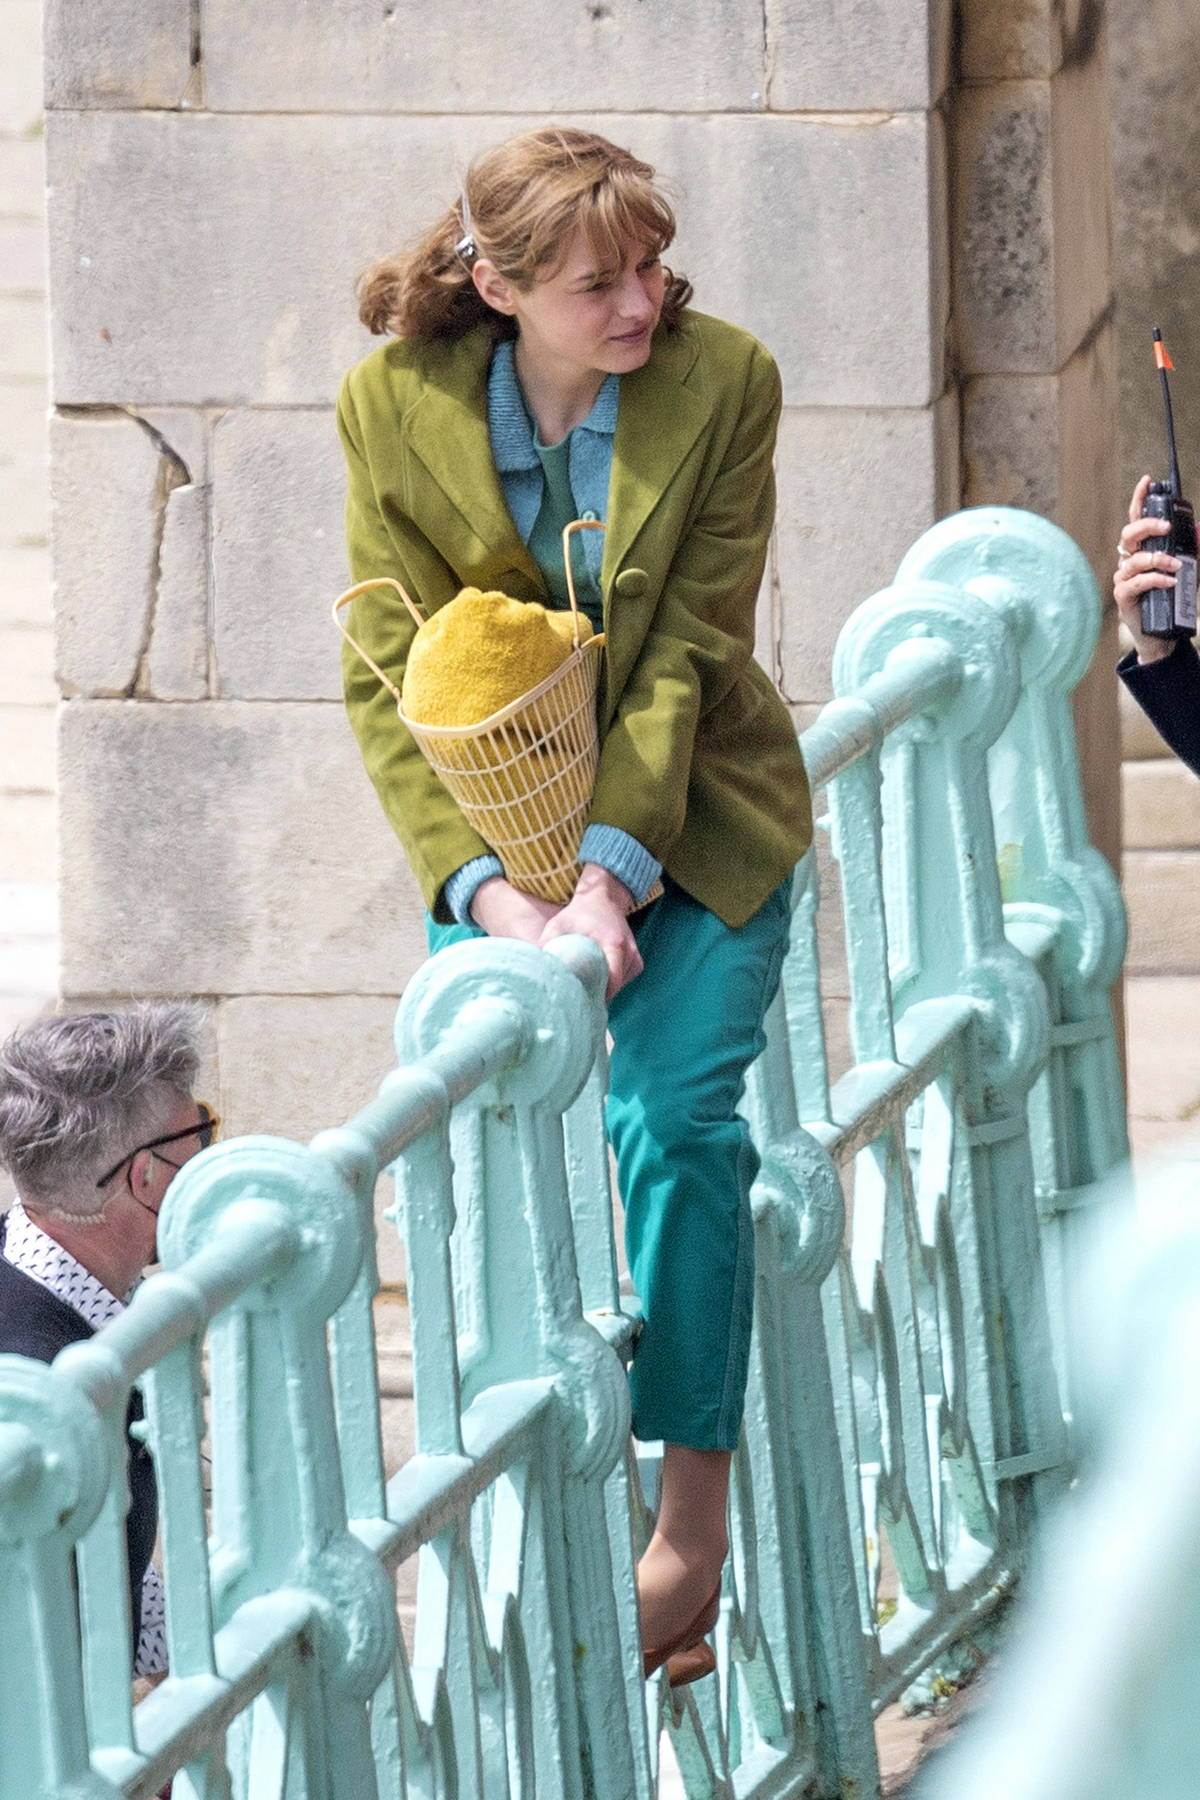 Emma Corrin is playful between takes as she films 'My Policeman' with Harry Styles in Brighton, UK